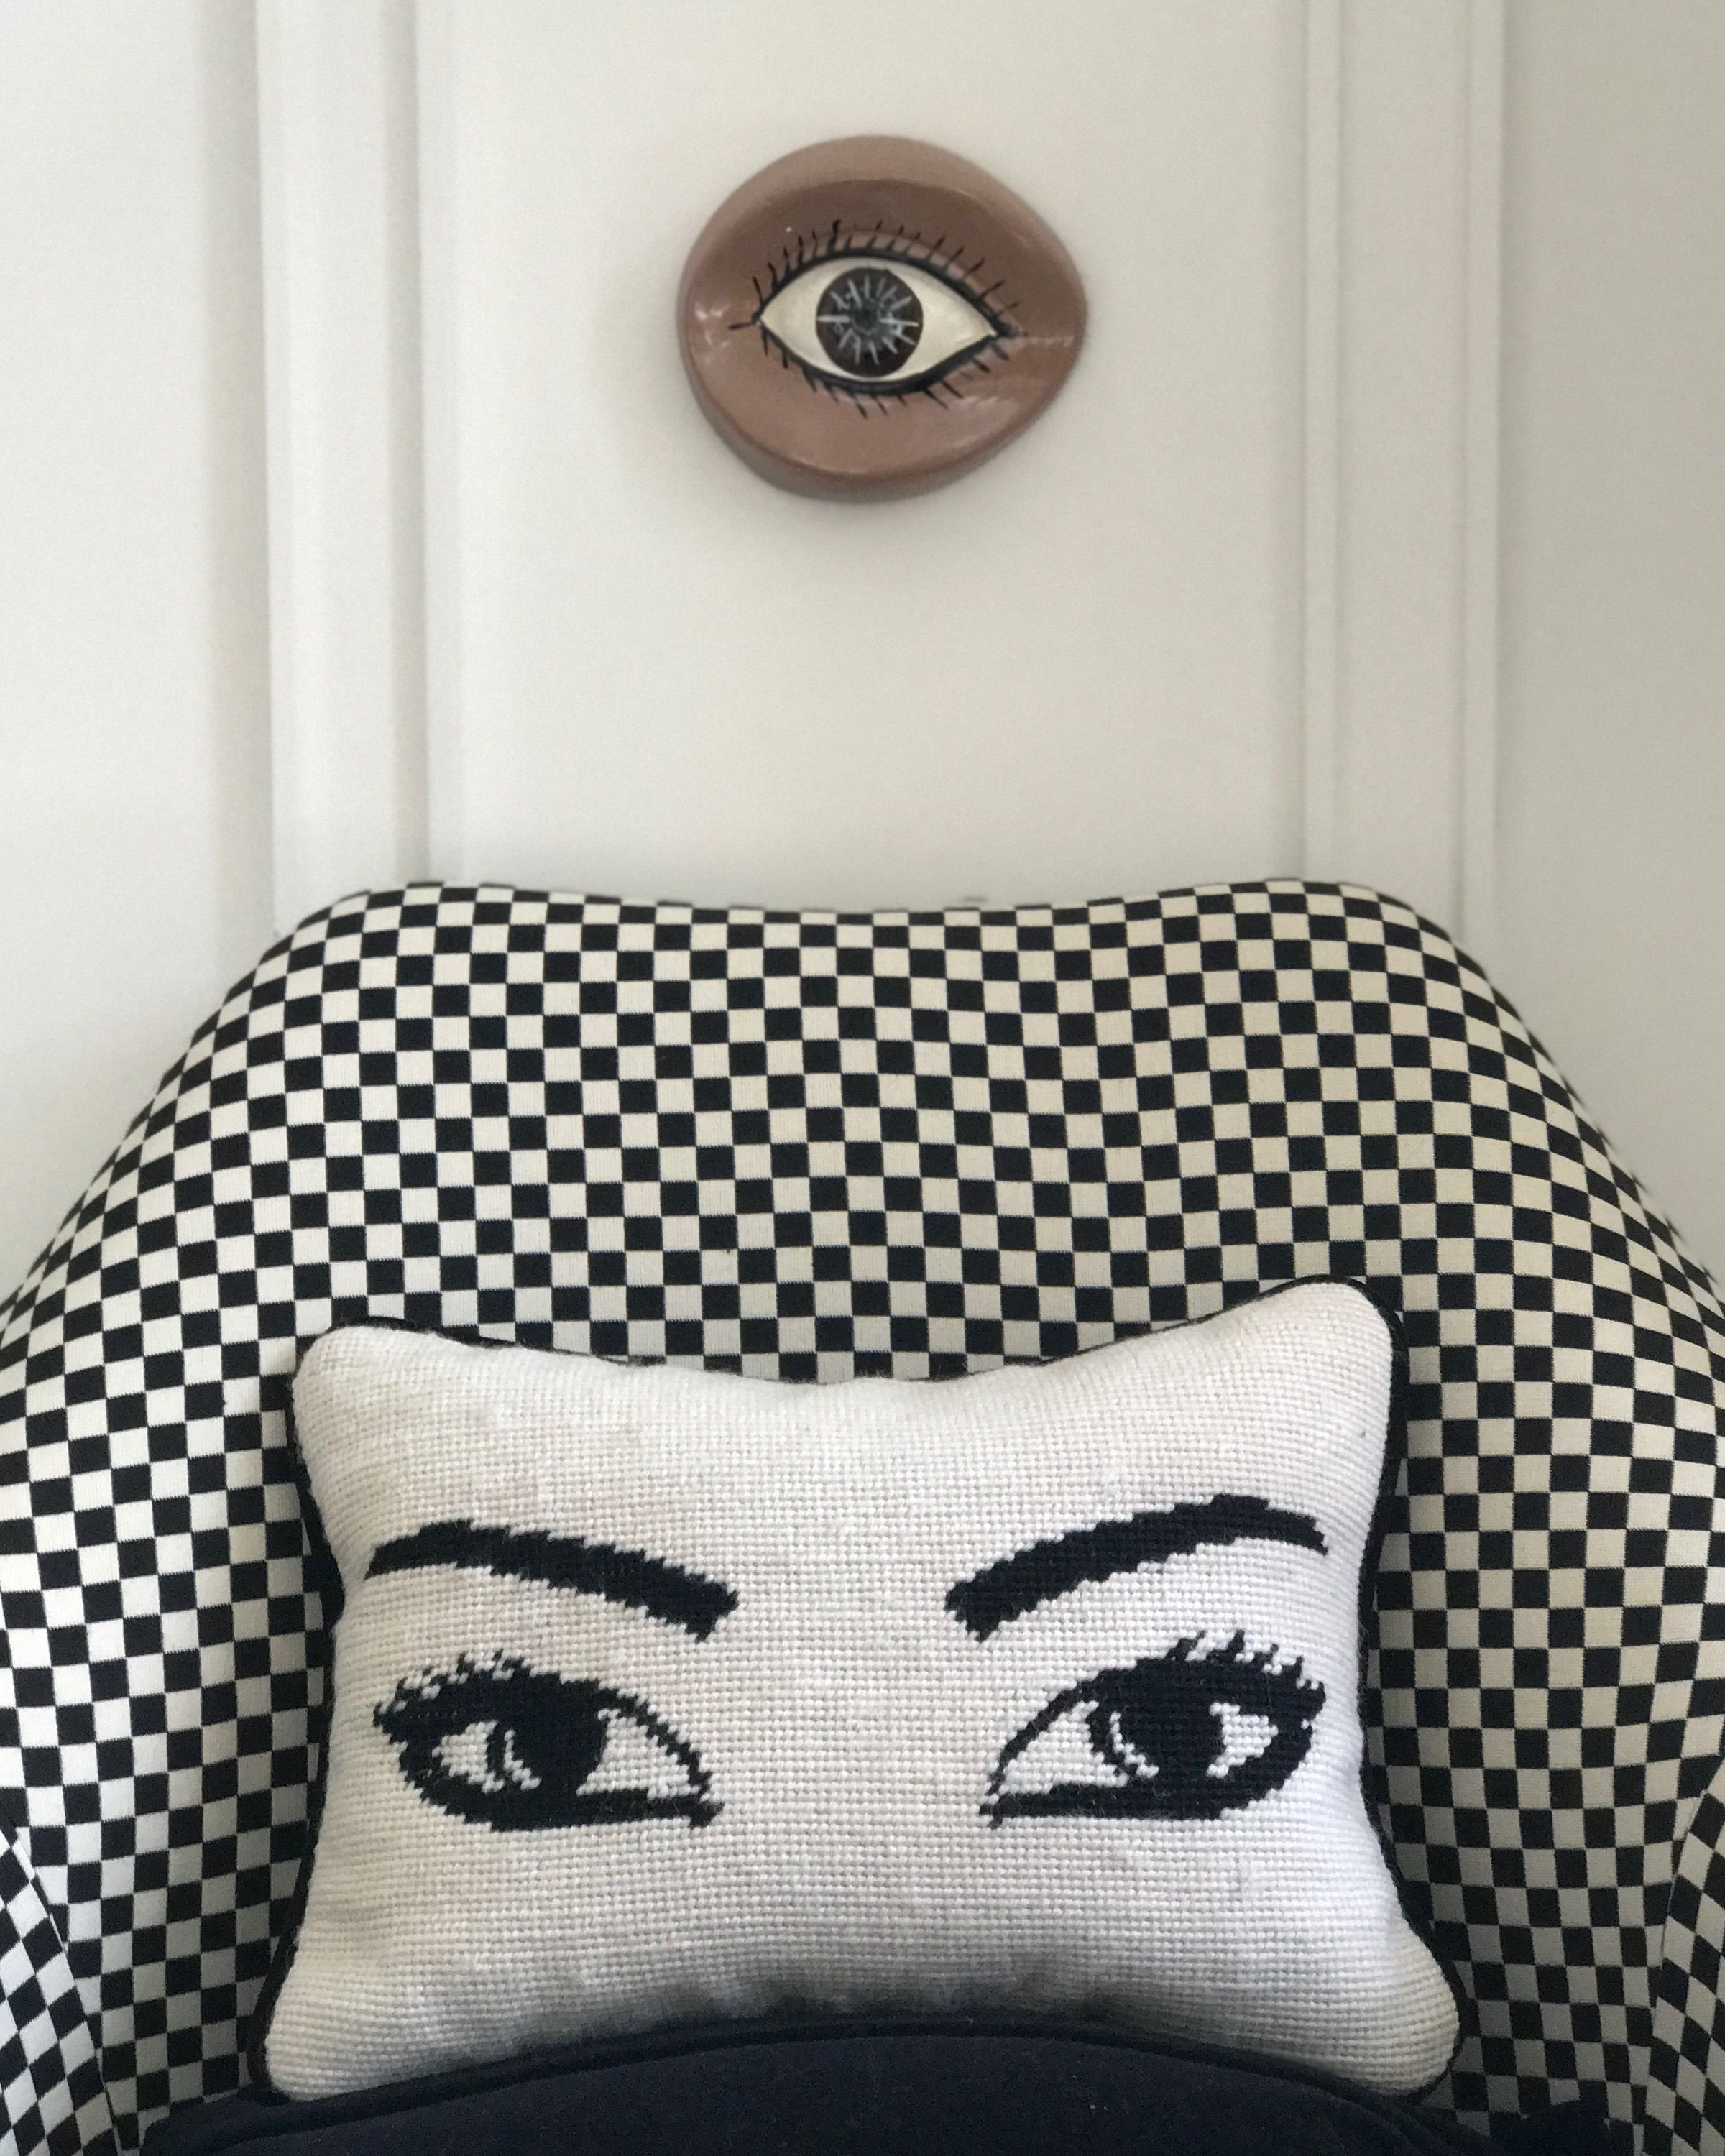 Eye Spy The Jonathan Adler Needlepoint Eyes Pillow Is A Surrealist Classic A Great Throw Pillow For Your Bedroom